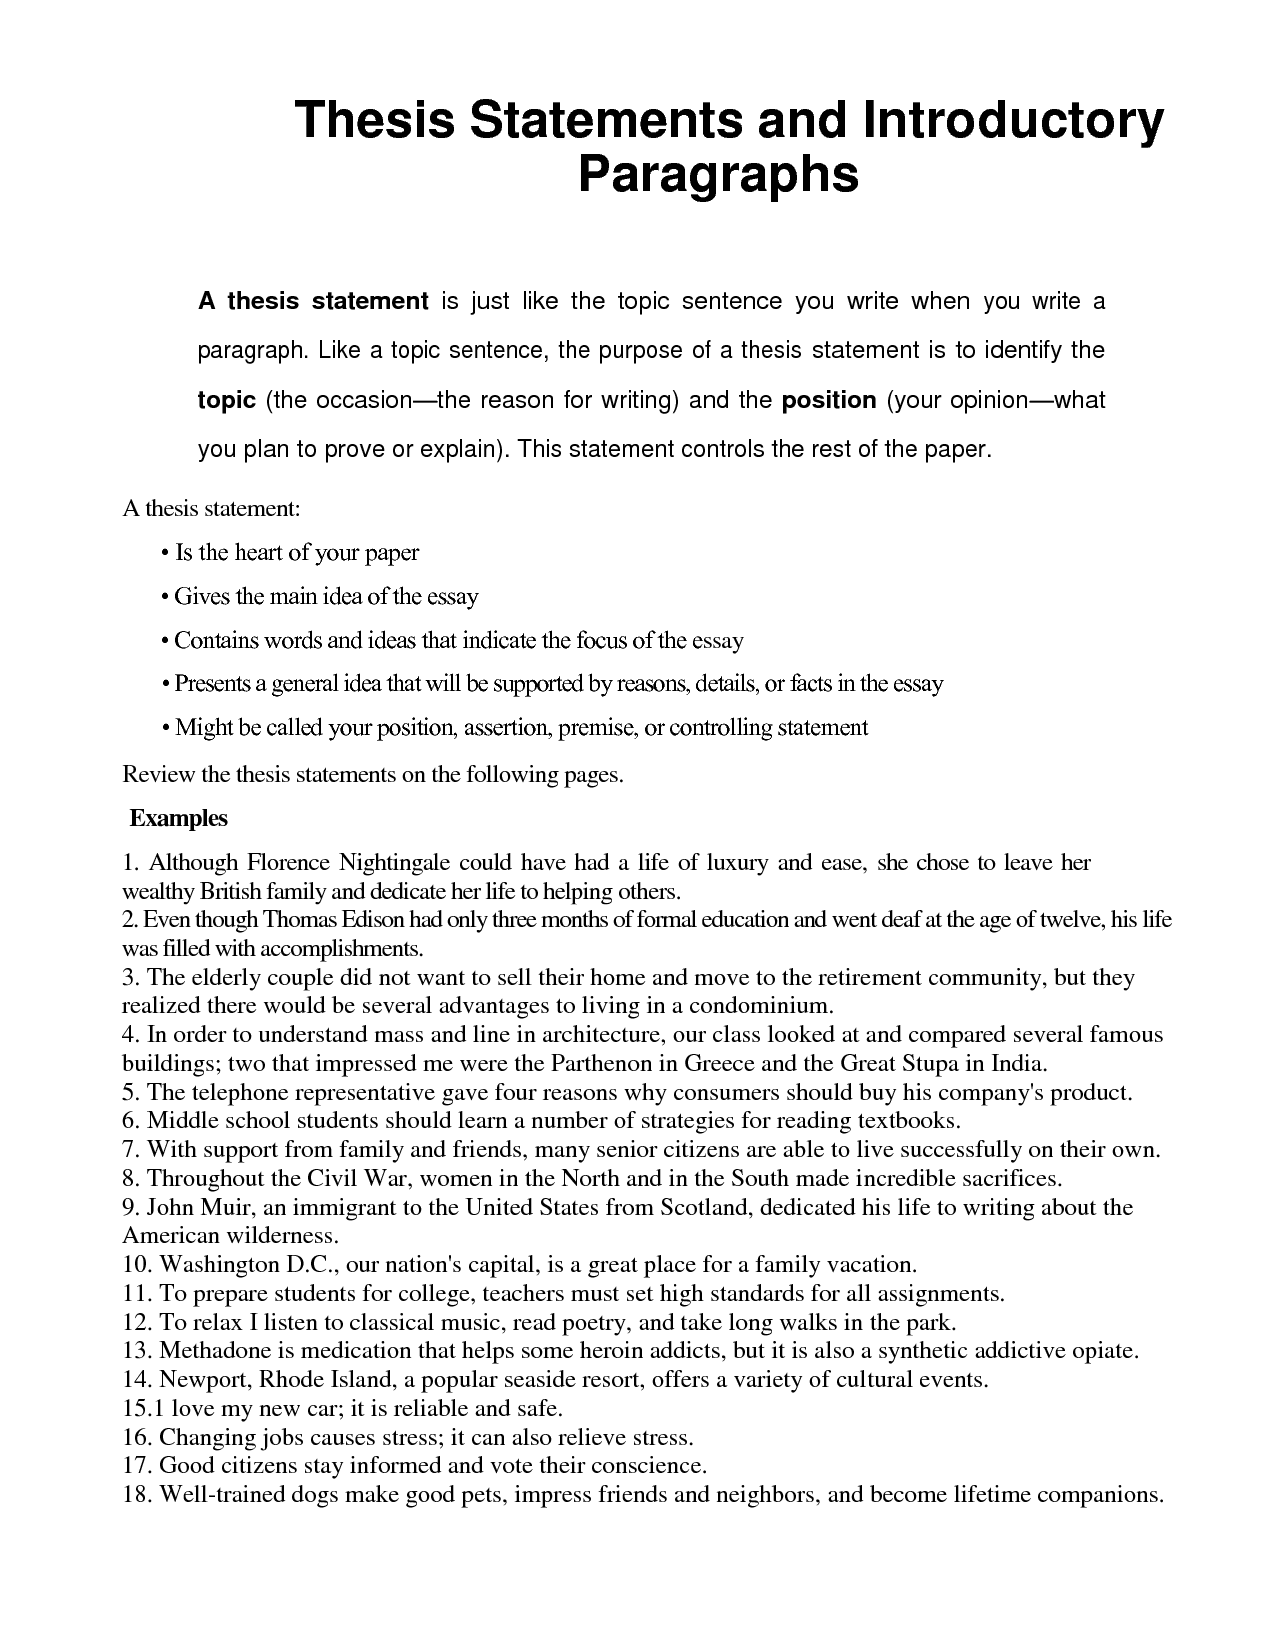 009 Water Pollution Essay Example Thesis Statement For Saving The Environment Xxp4v Incredible In Hindi Pdf Download Odia Kannada Full